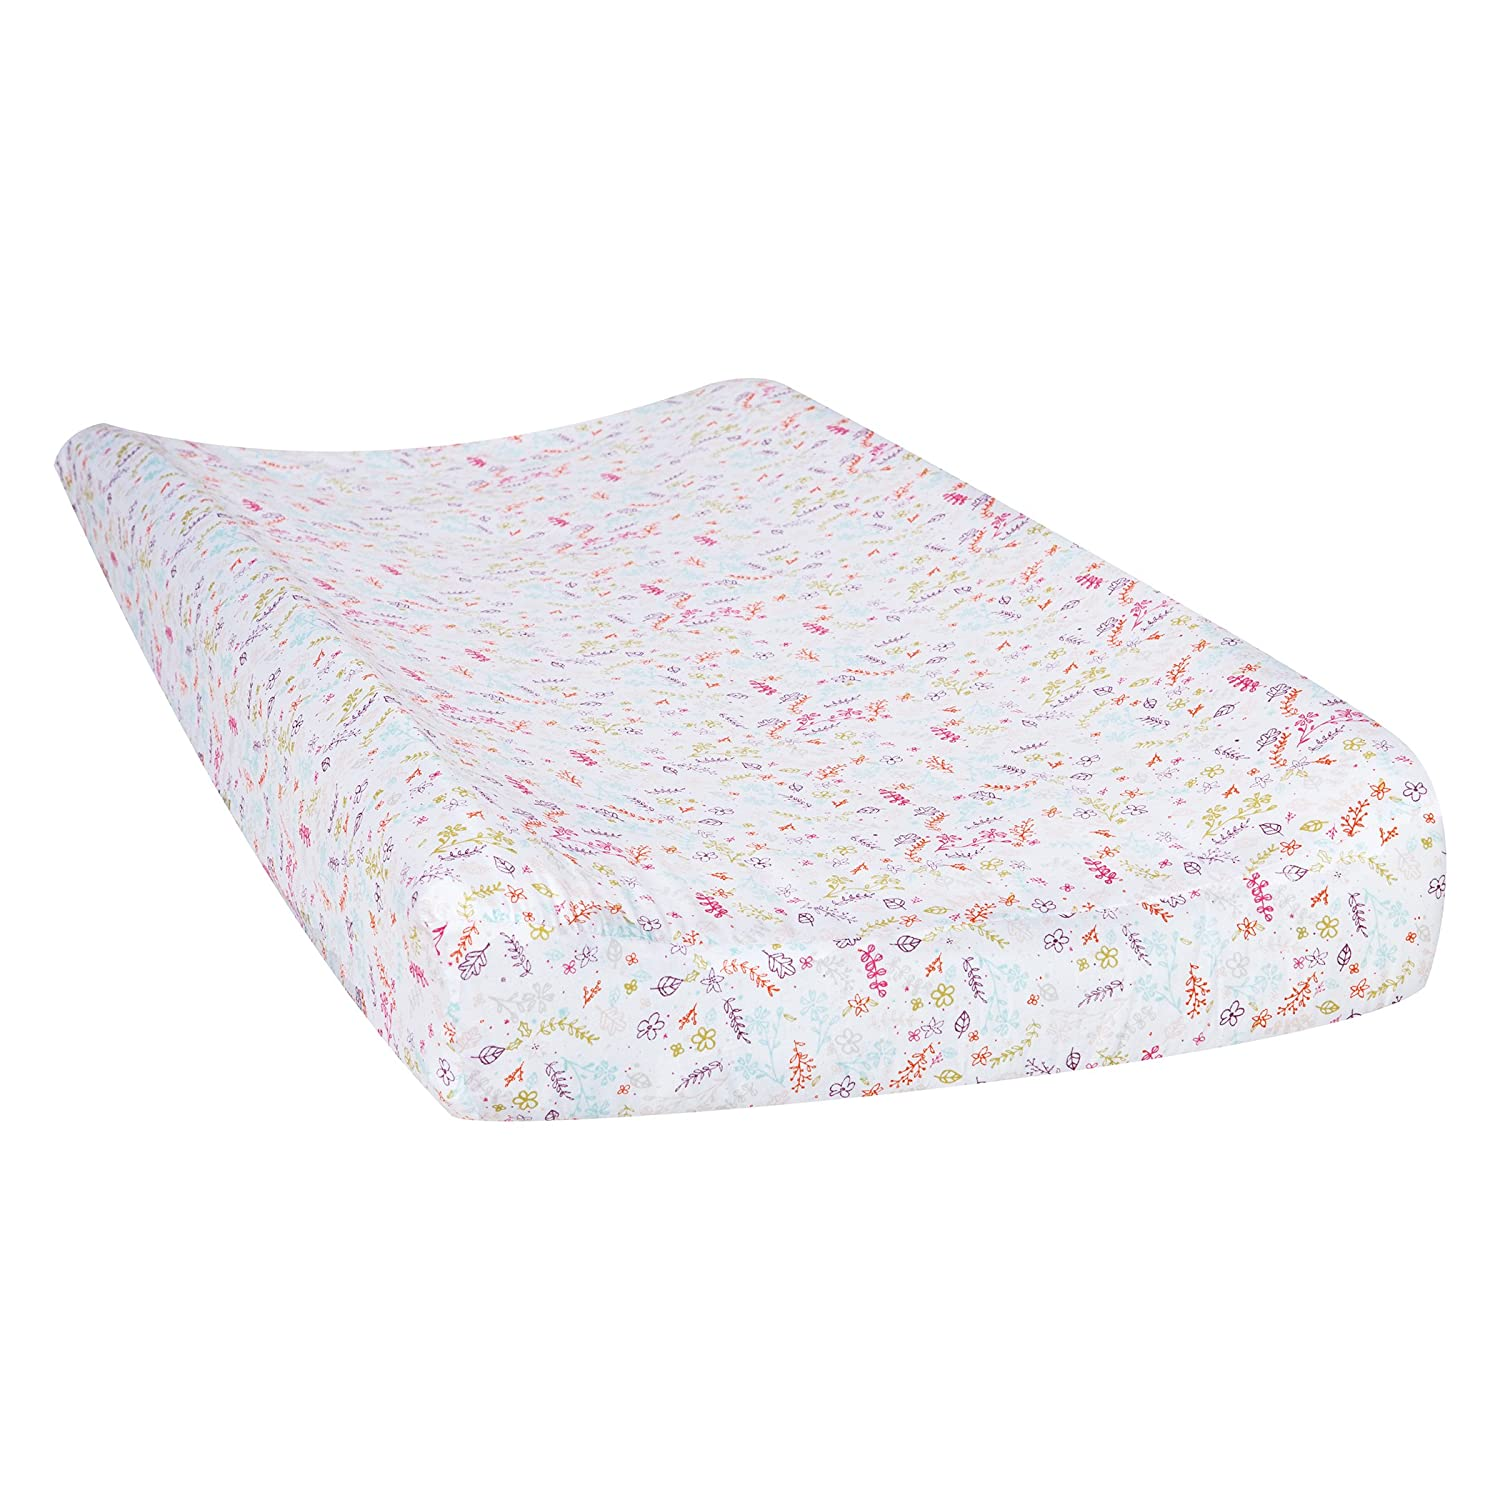 Trend Lab Wild Forever Floral Changing Pad Cover, White/Pink 102470